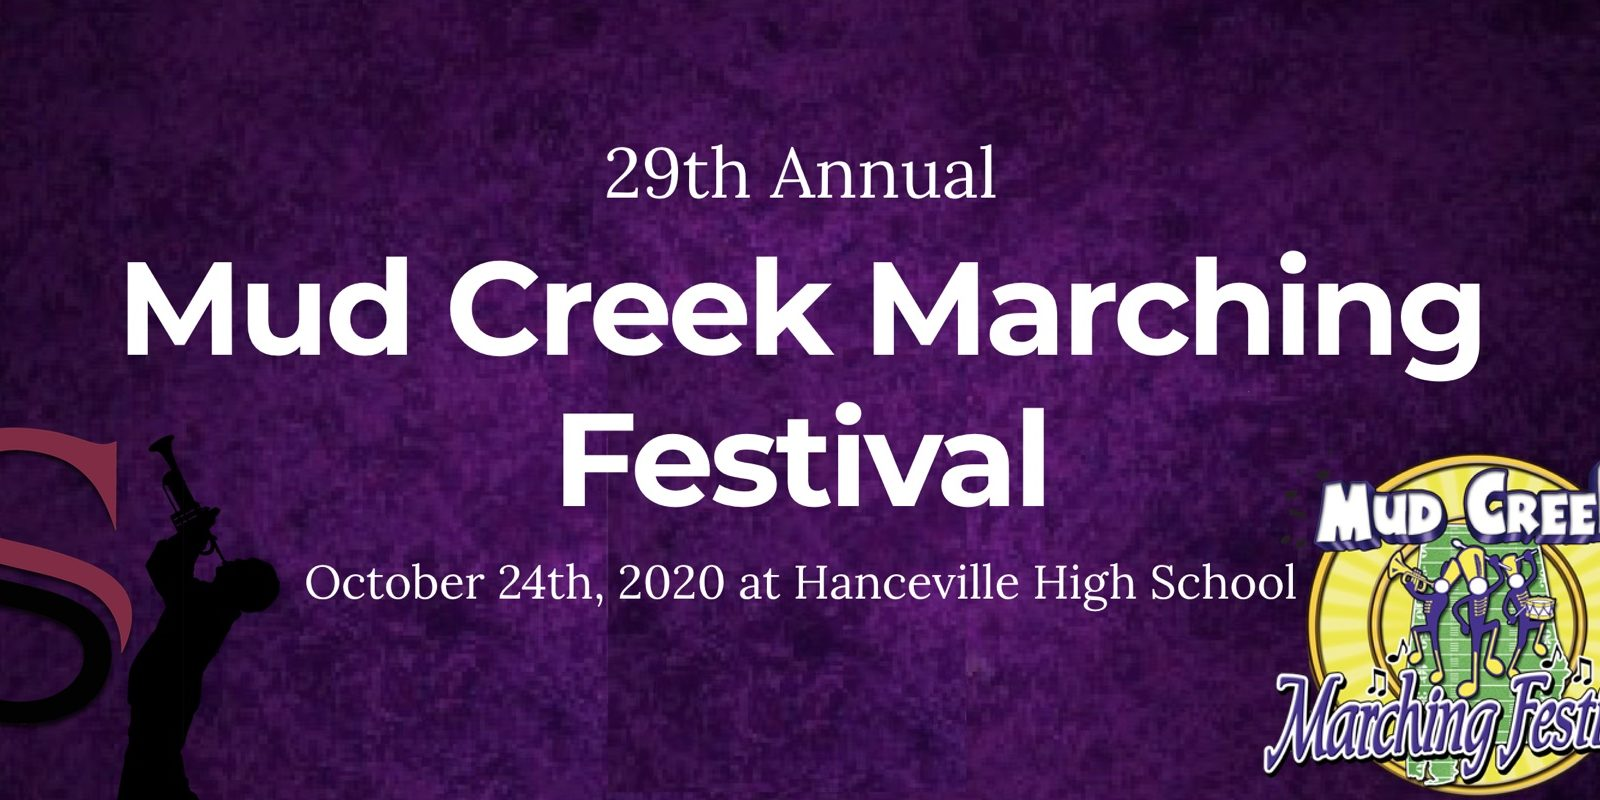 Mud Creek Marching Festival Week